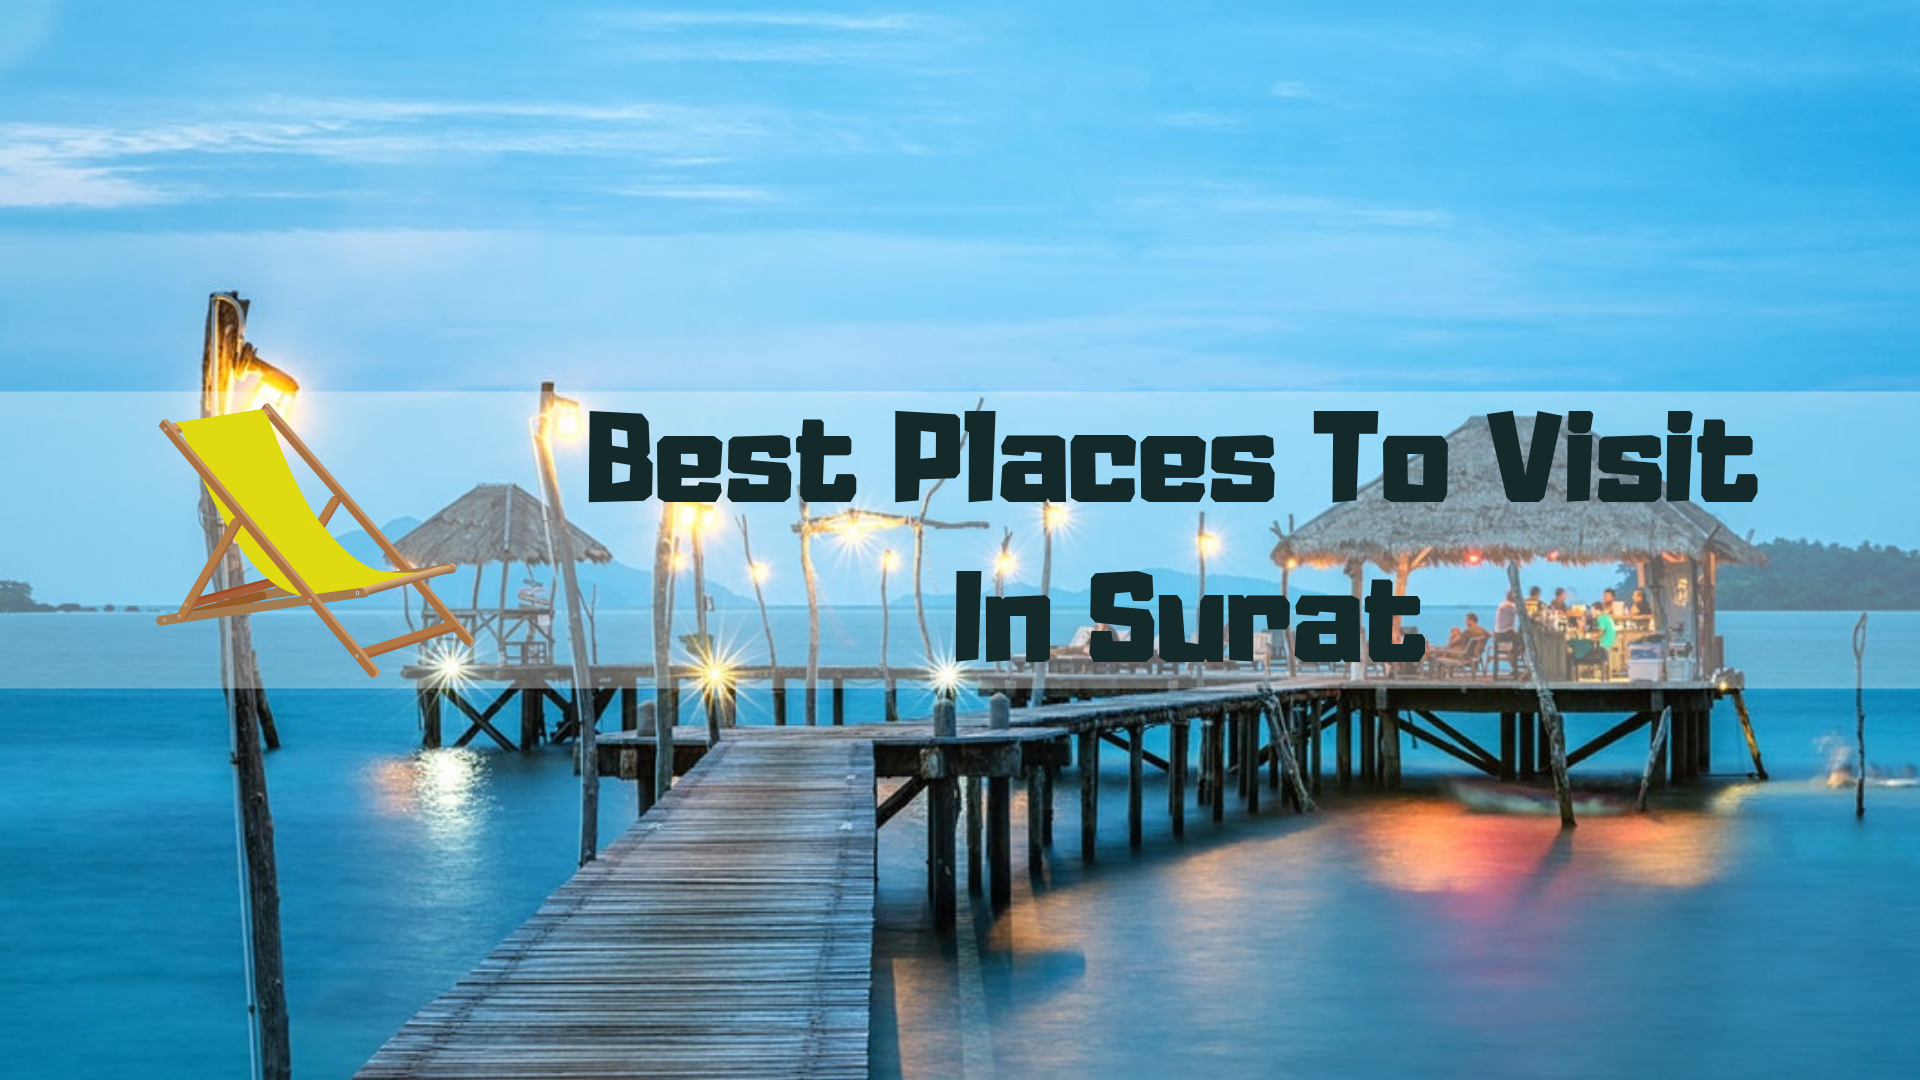 BEST Places to Visit in surat